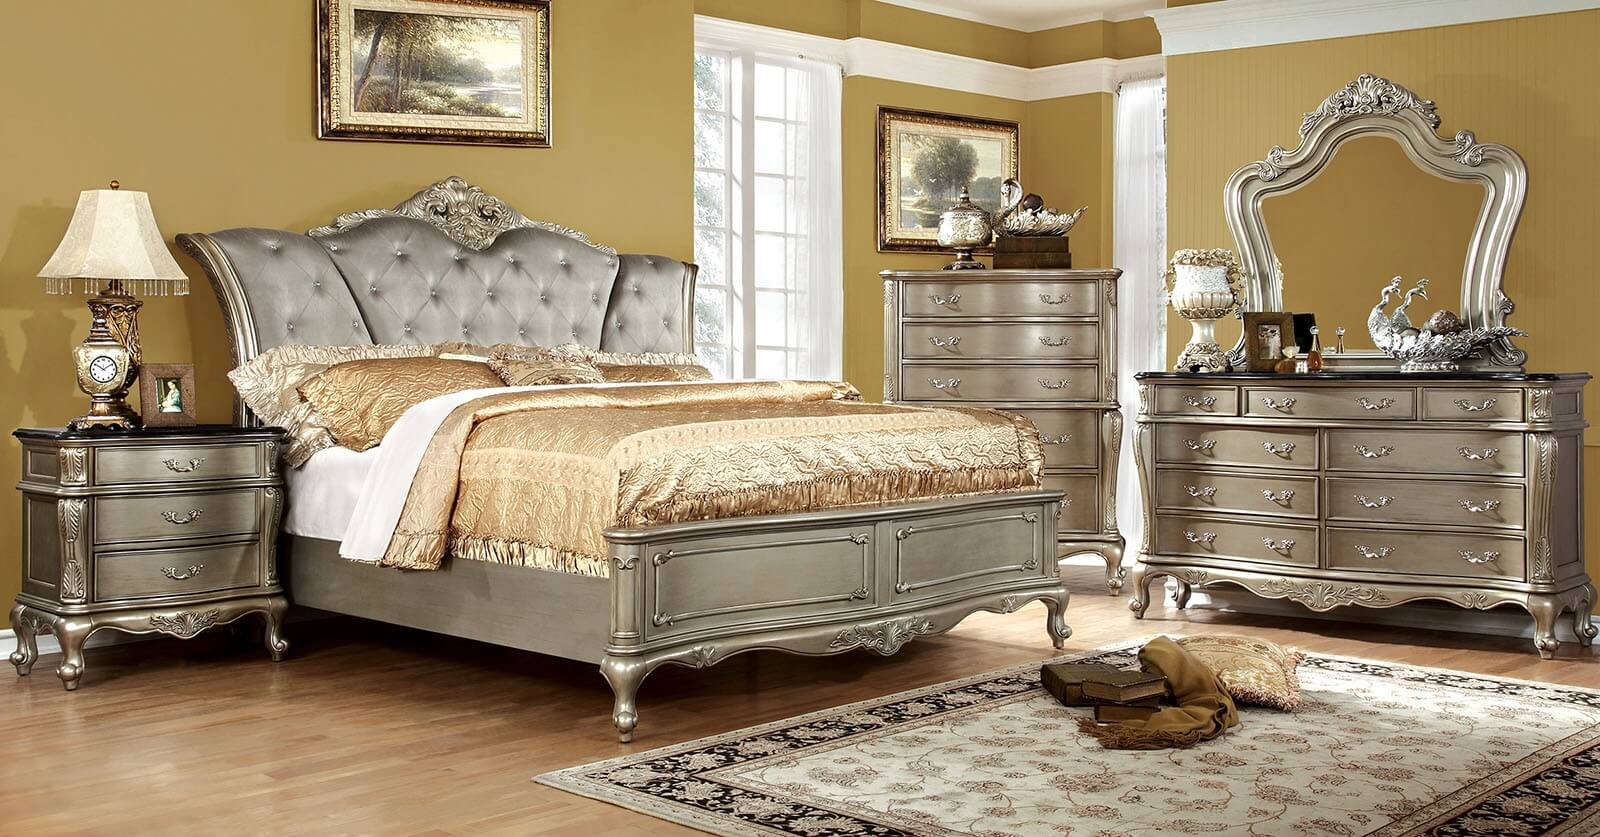 Ohara bedroom set by furniture of america for Furniture of america dallas texas